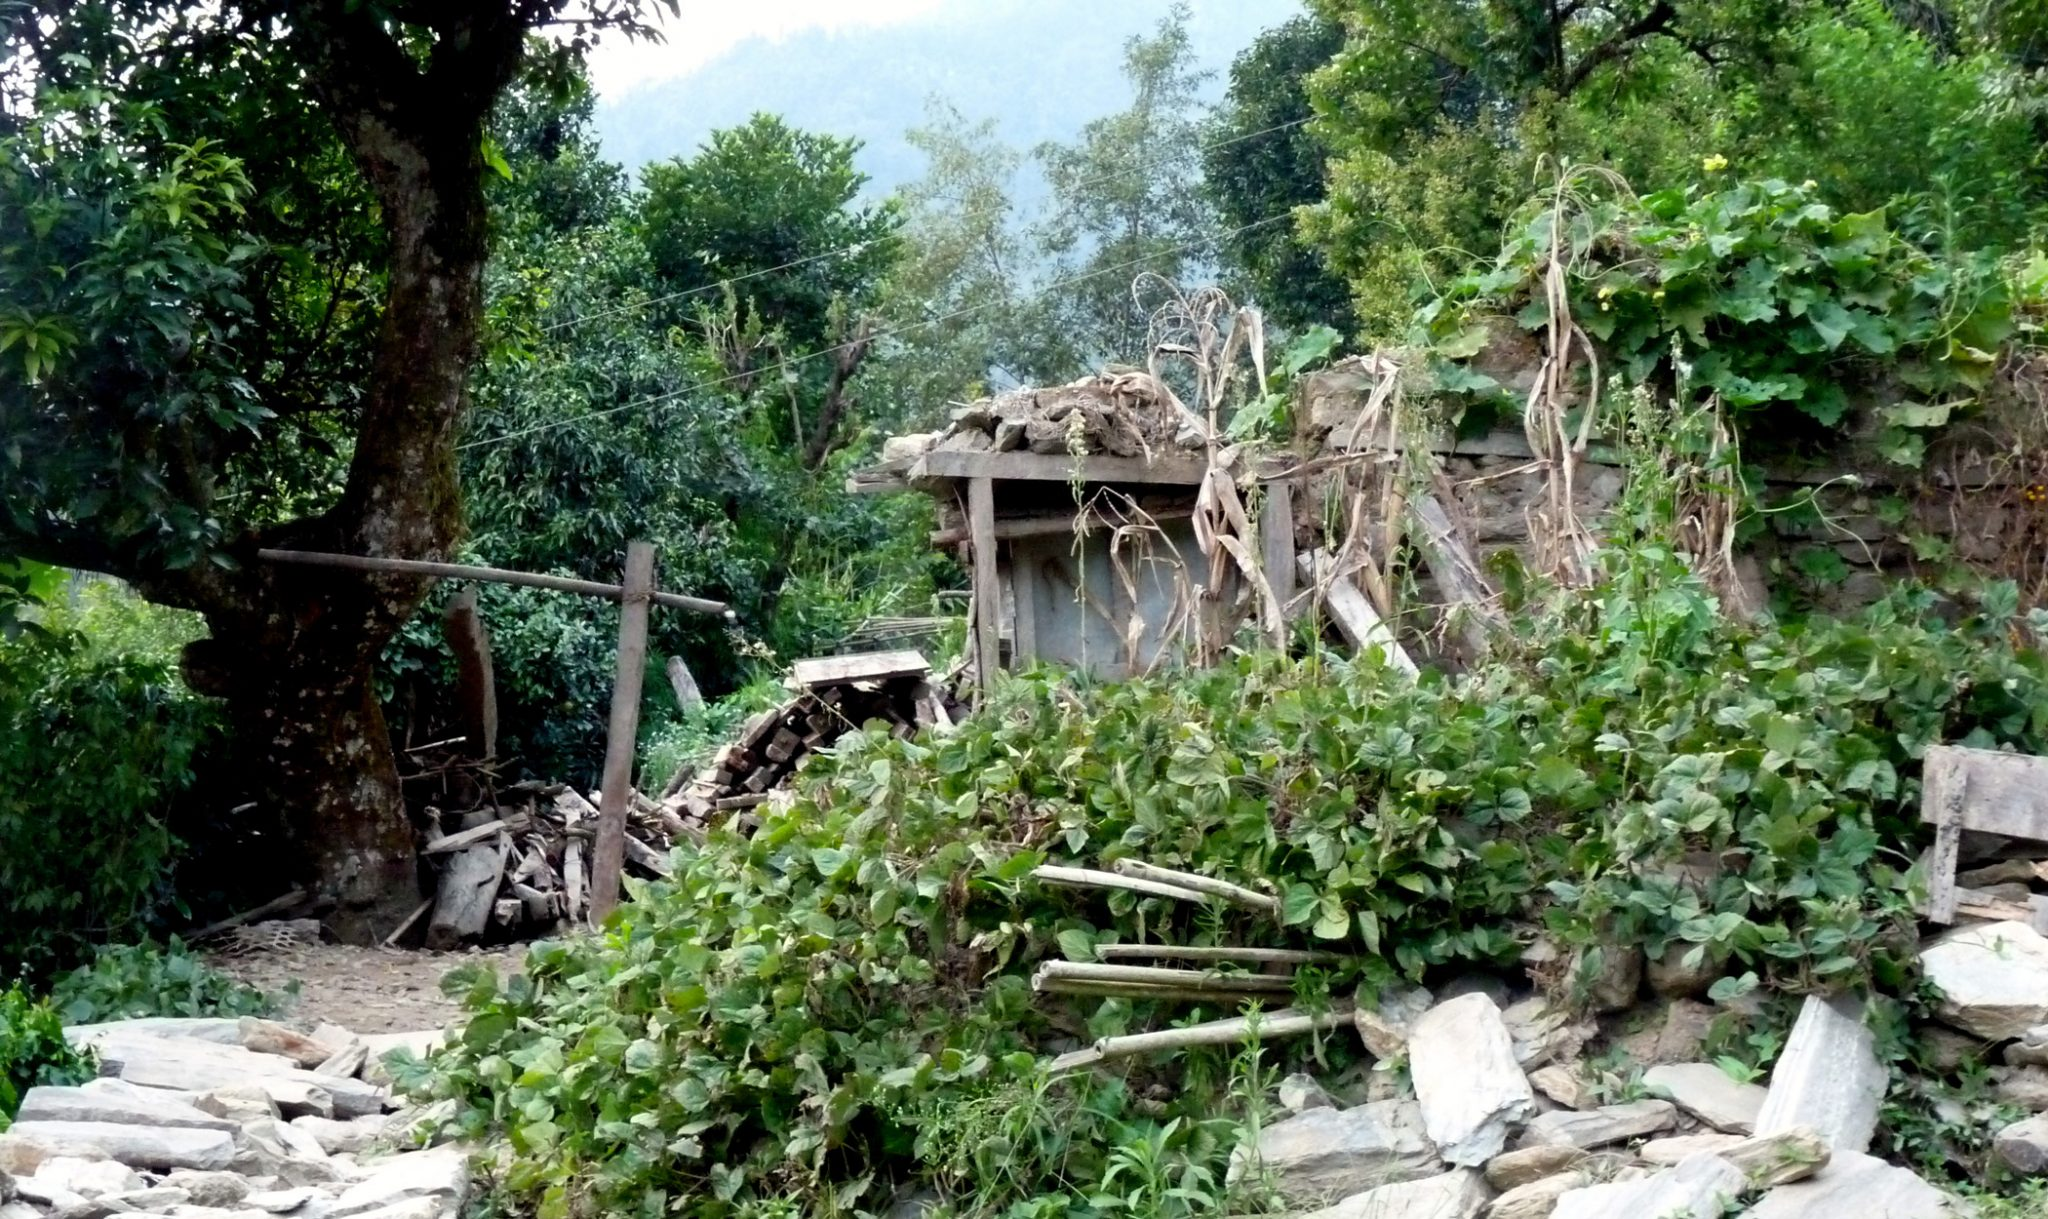 Foliage grows out of the remains of a house.